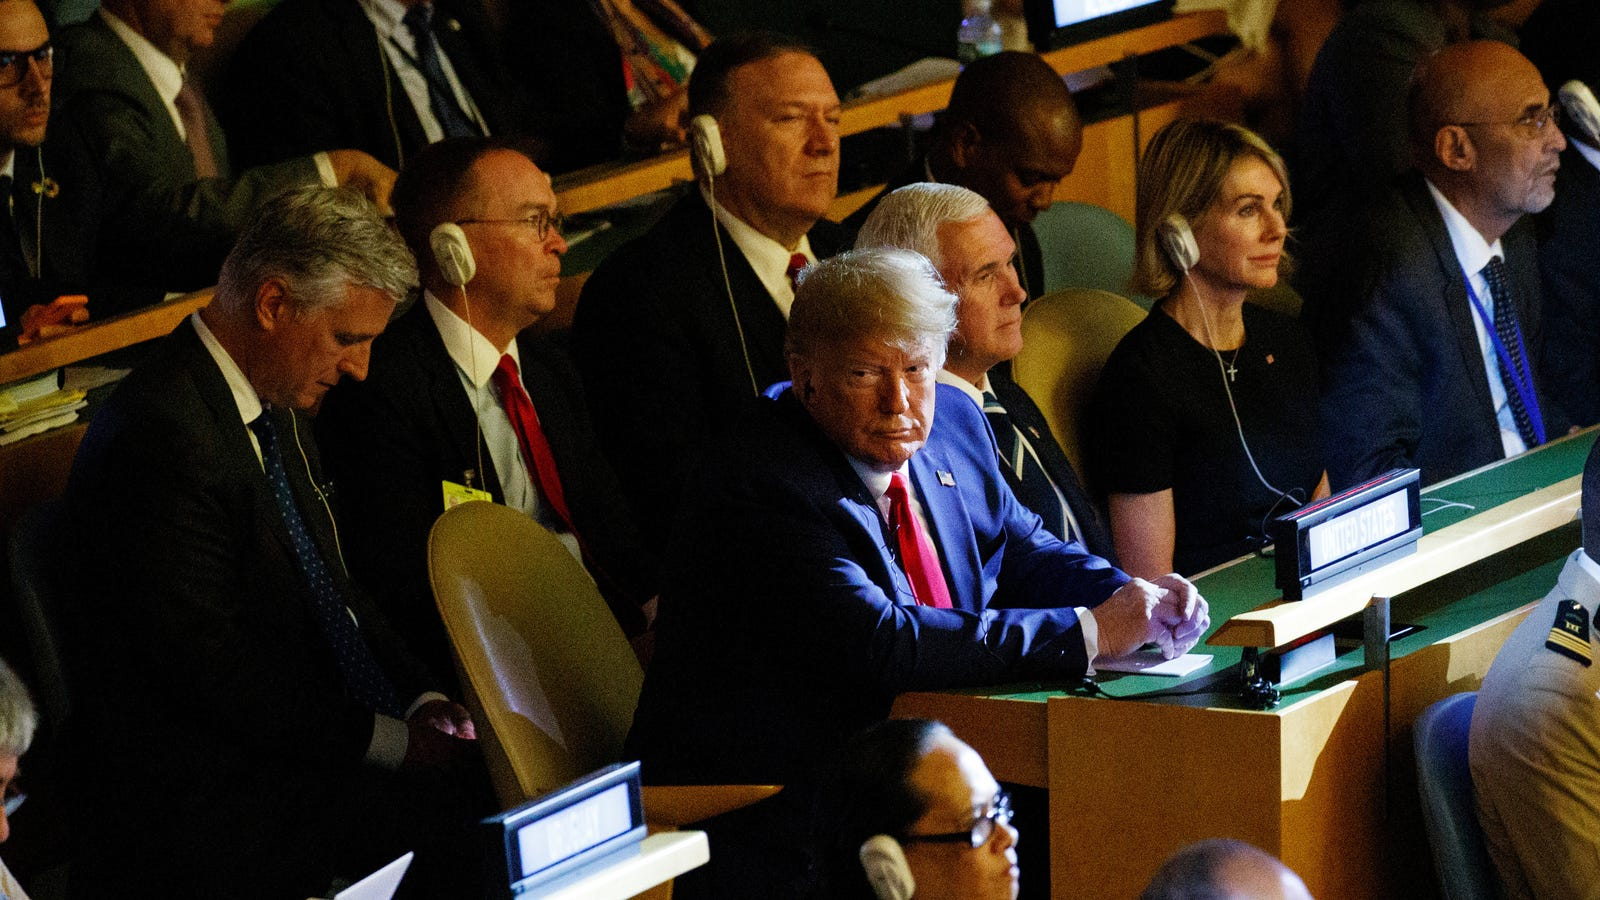 Trump Endures Nearly 15 Whole Minutes of UN Climate Summit